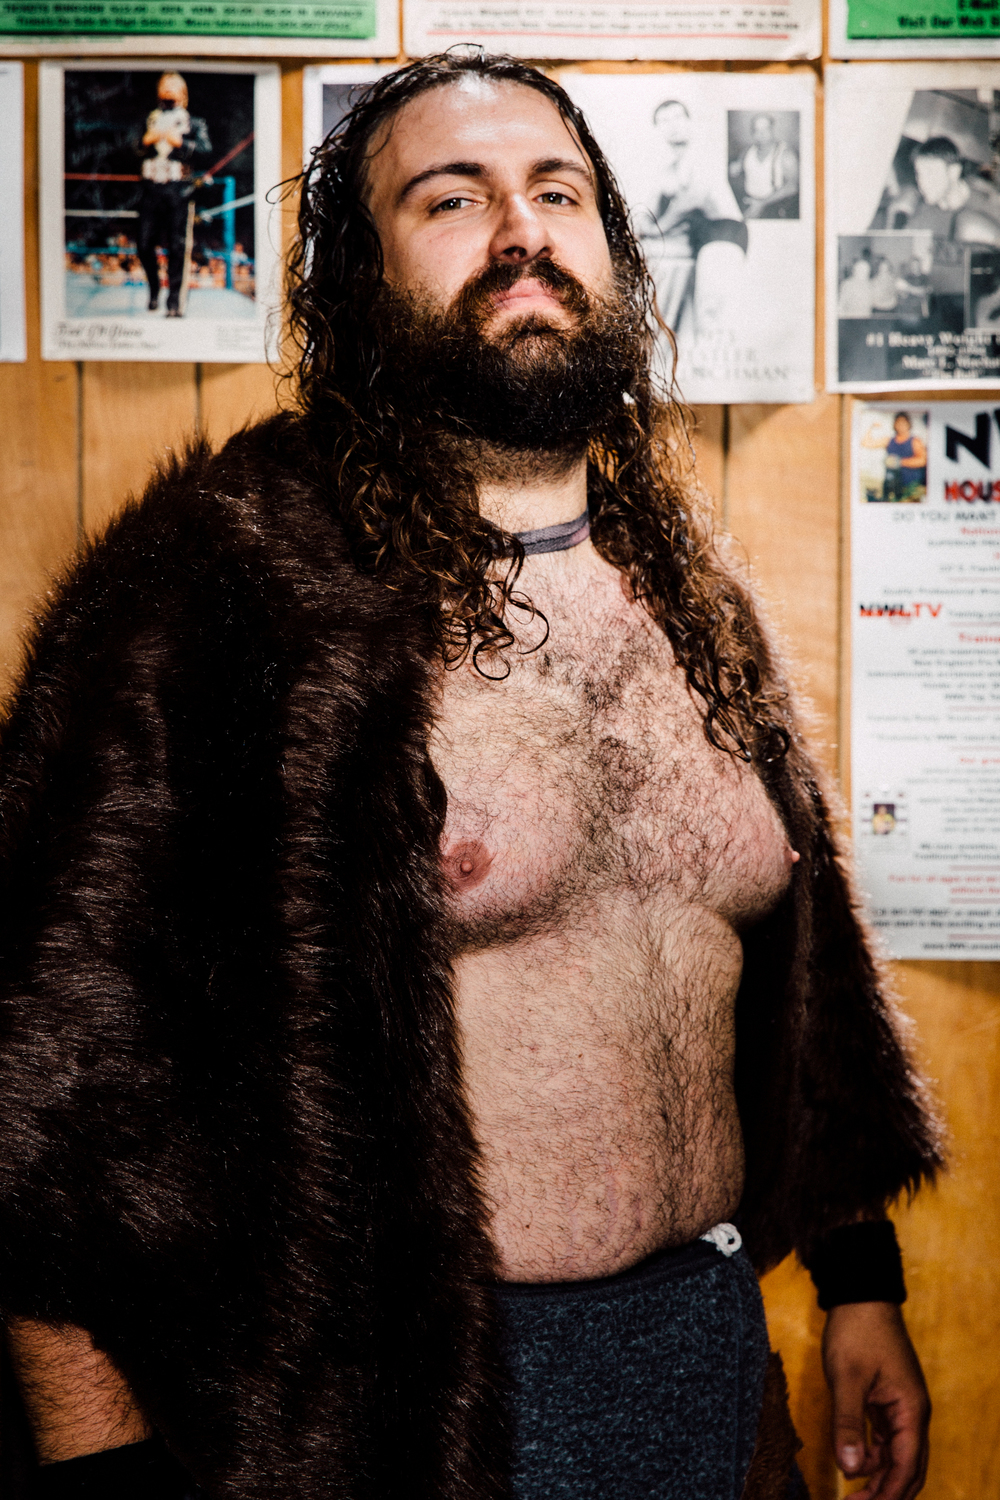 """Grizzly"" Joe Grasso, part-time wrestler, full-time choreography"